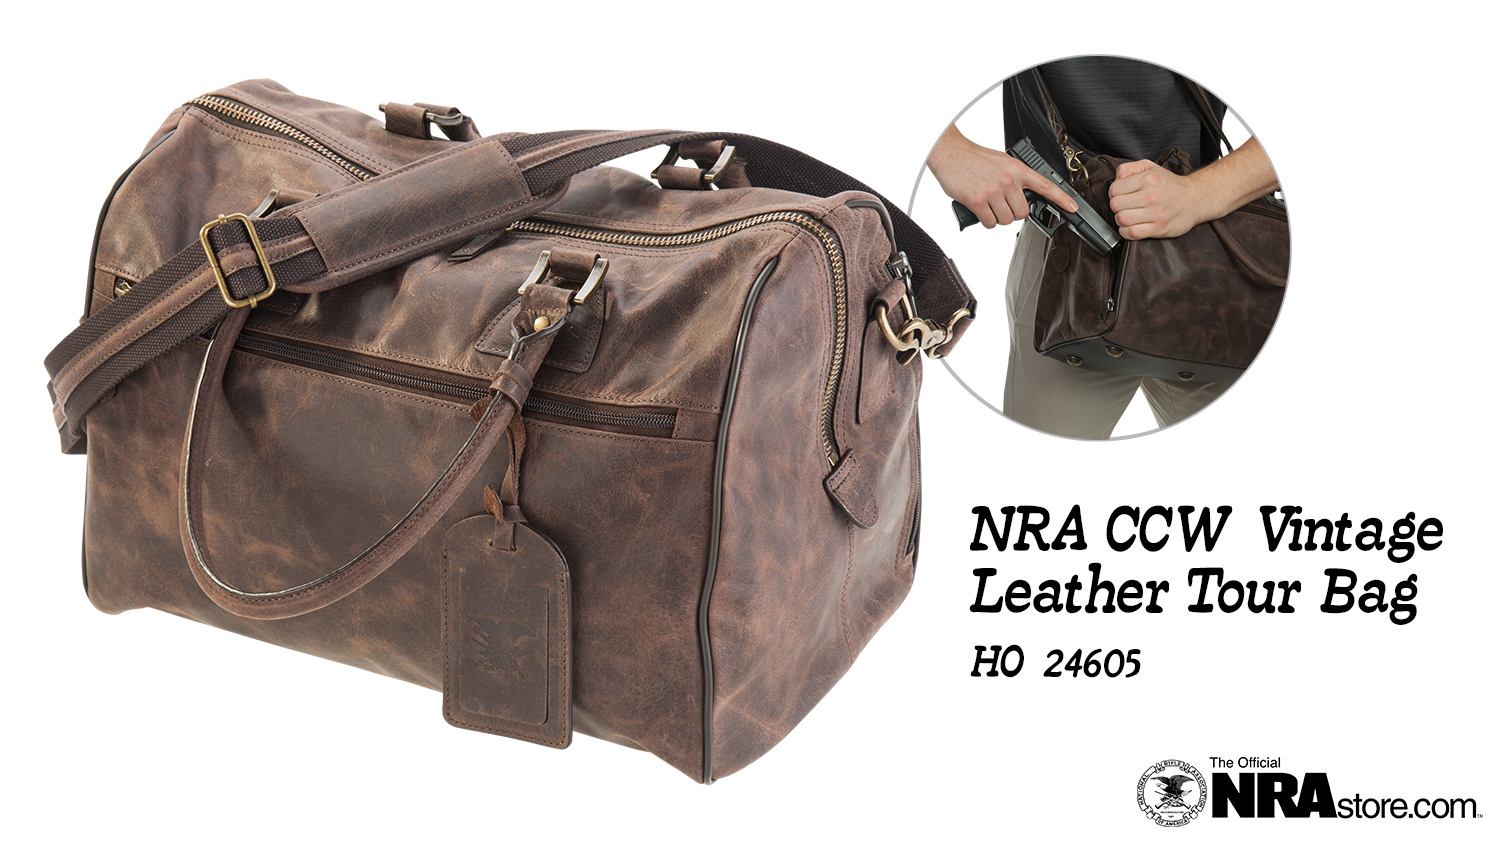 The Perfect CCW Travel Bag